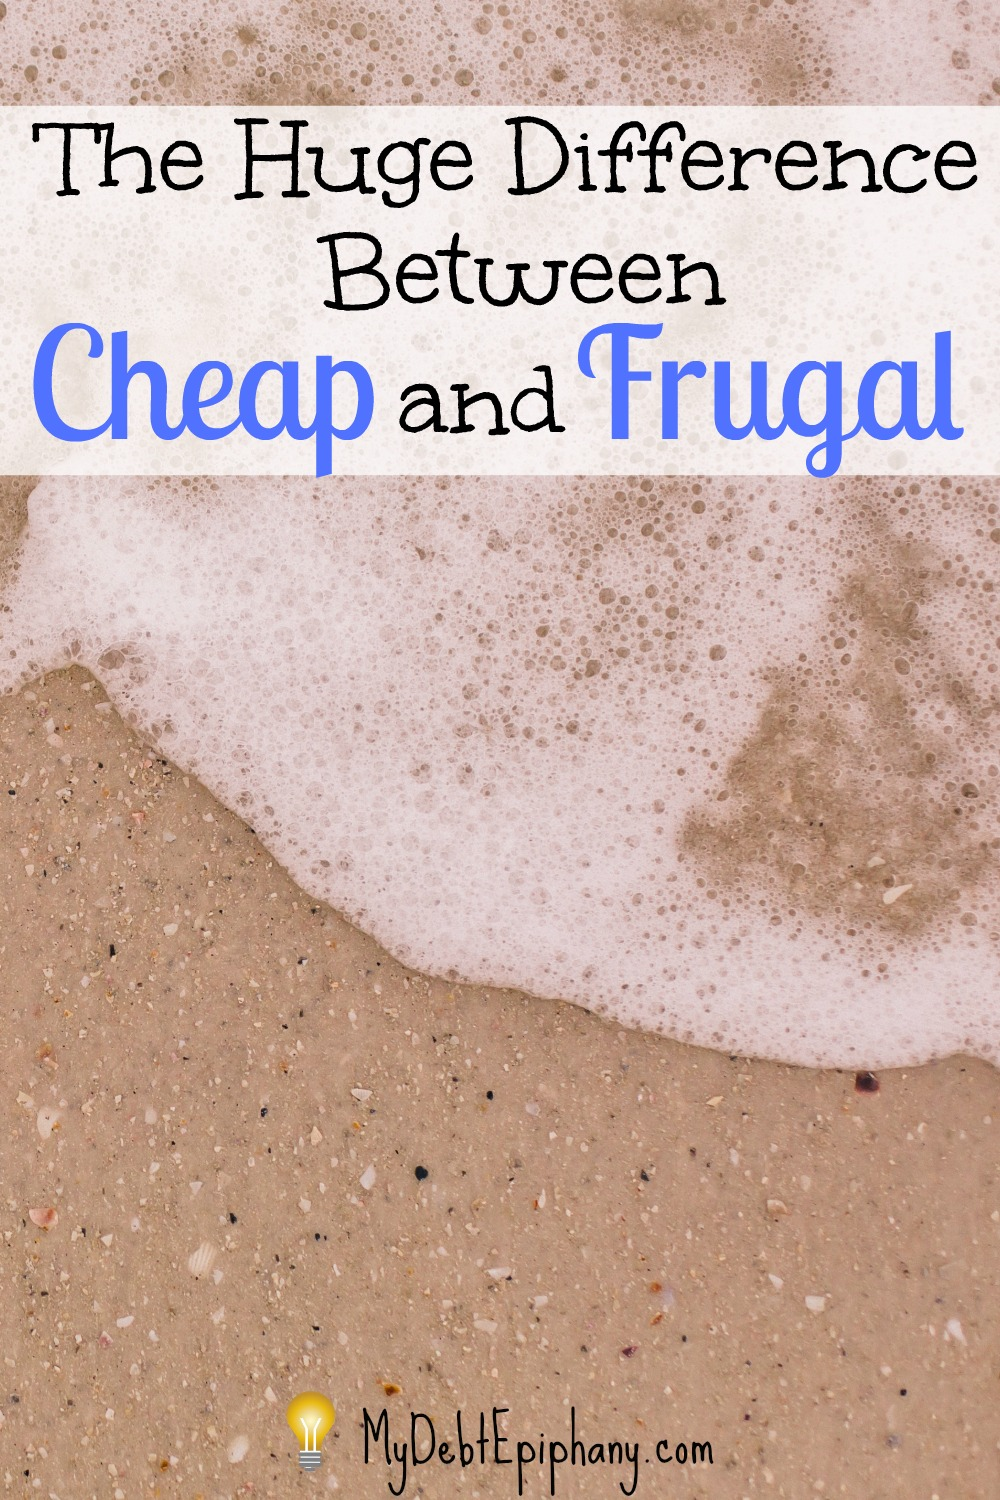 Do you have any pet peeves related to finances? Mine is when people don't understand the huge difference between frugal and cheap.